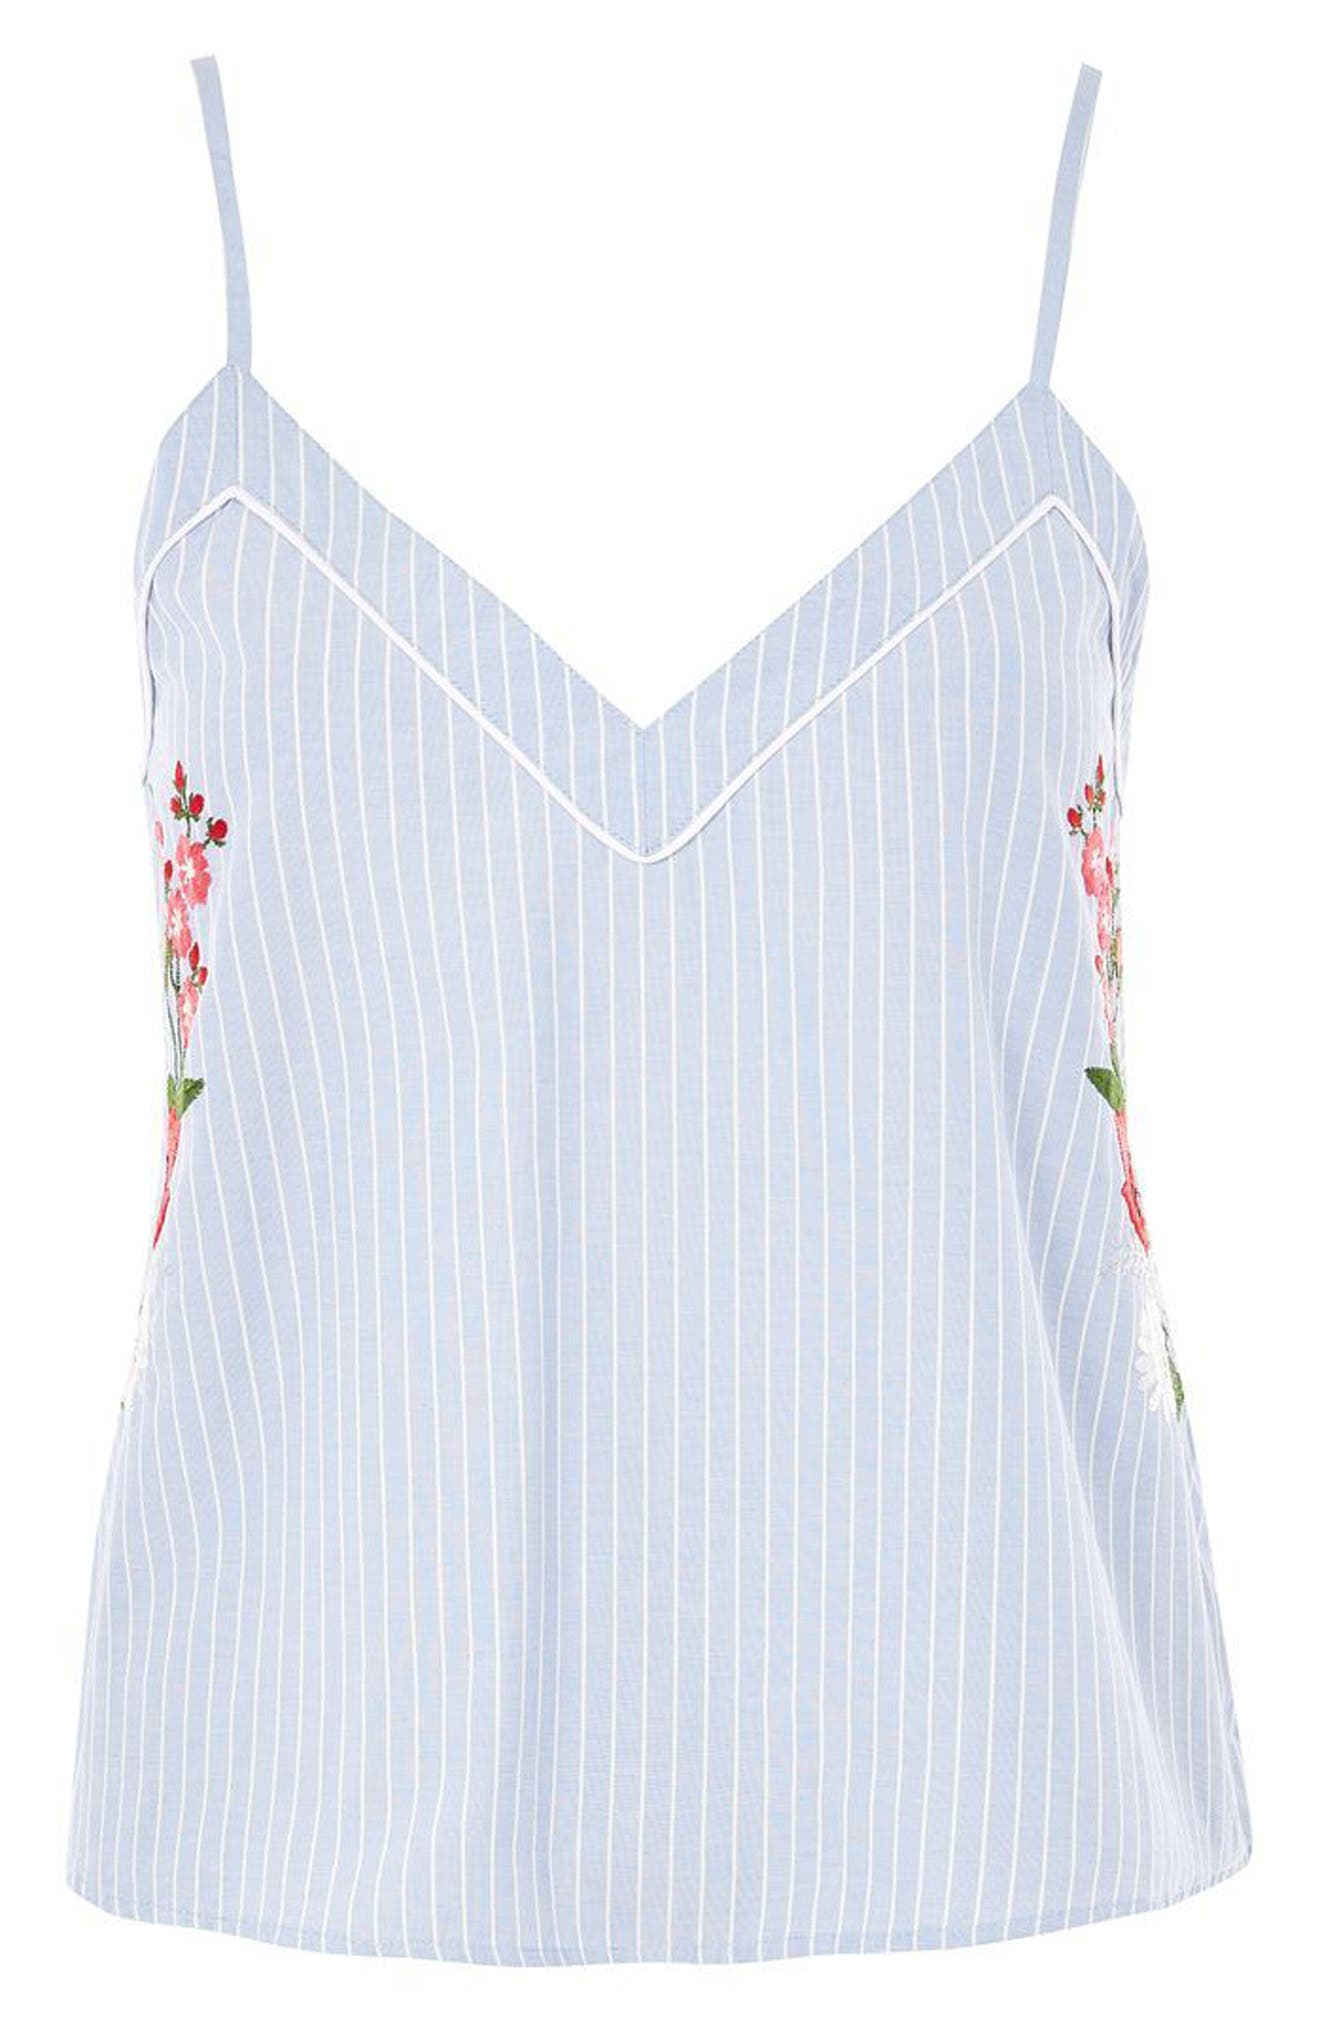 Floral Embroidered Stripe Camisole,                             Alternate thumbnail 3, color,                             Blue Multi